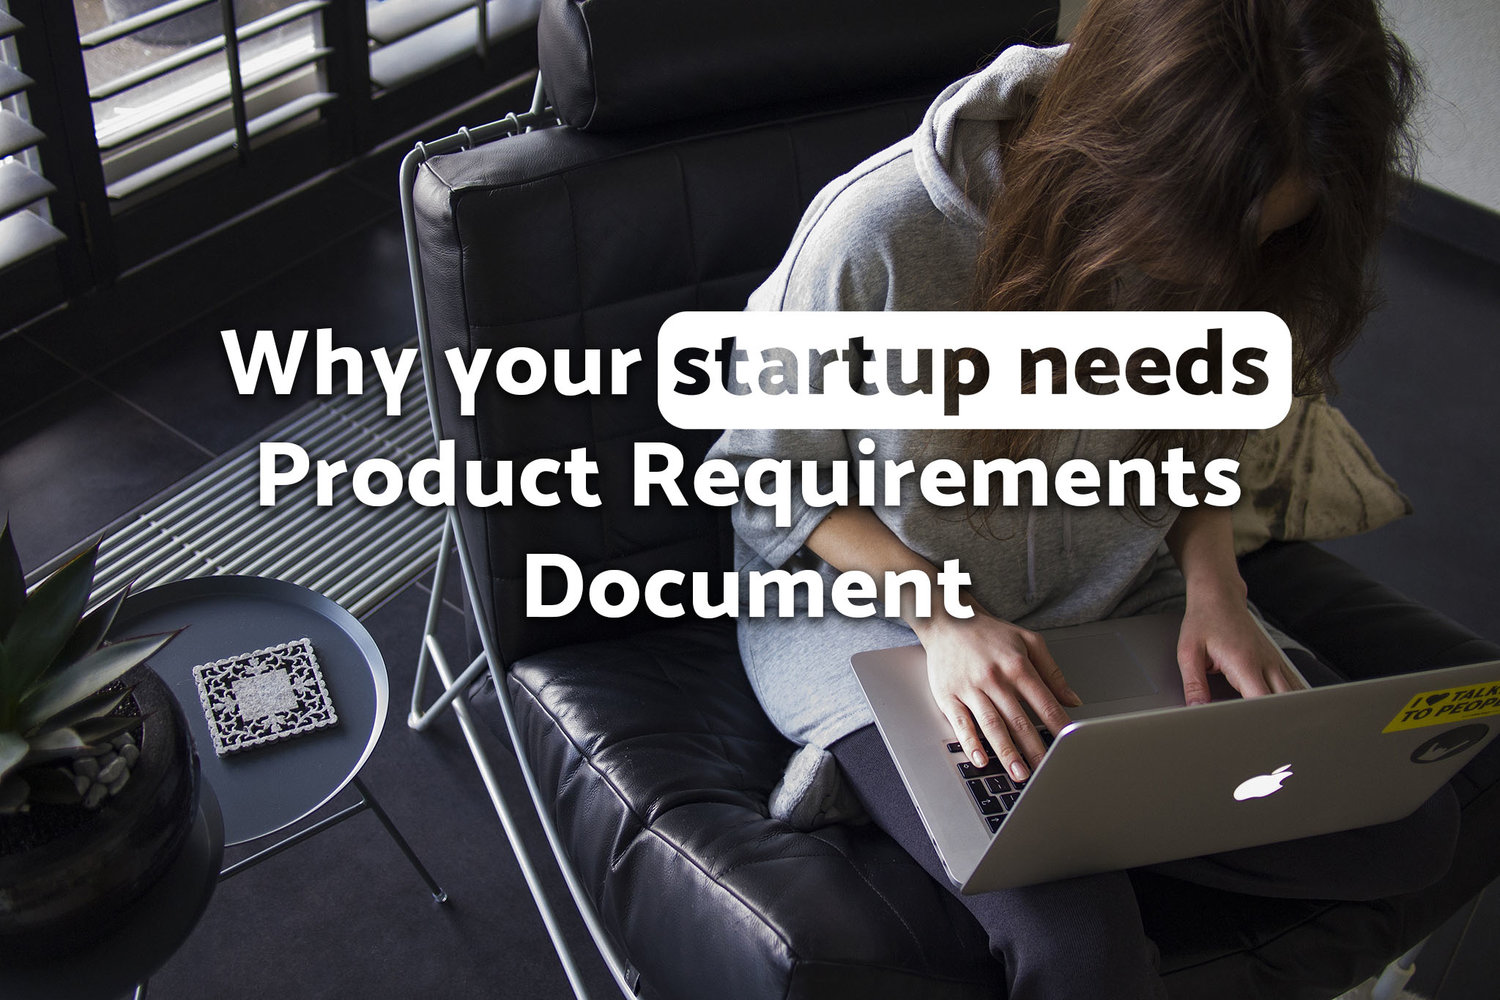 Why Your Startup Needs Product Requirements Document Molfario - Prd product requirements document template